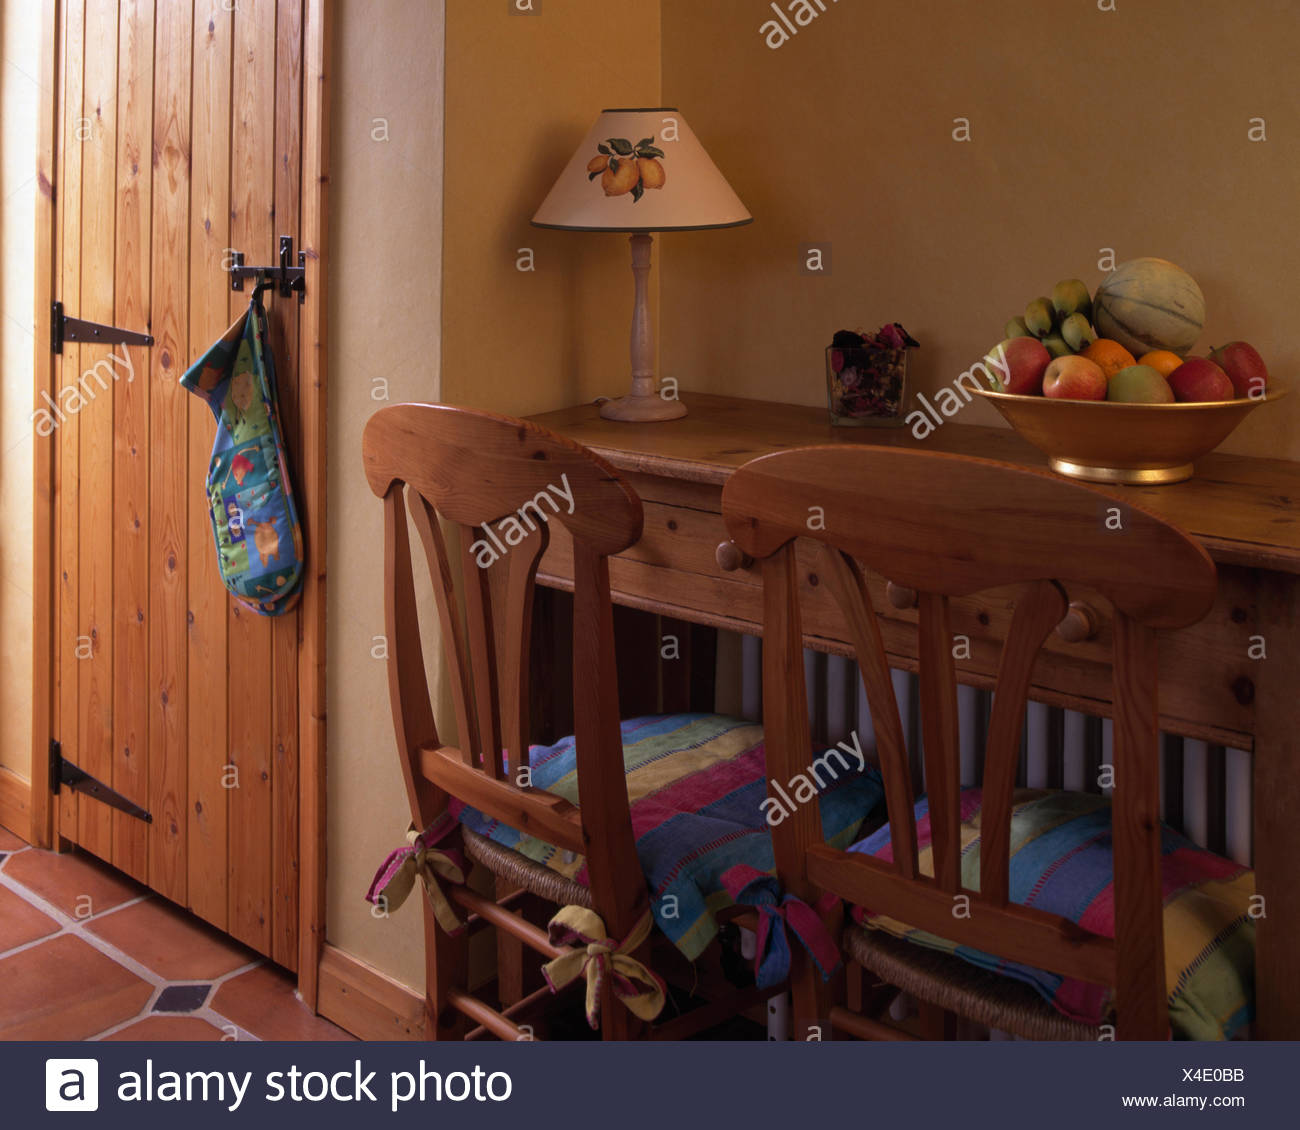 Simple Wooden Chairs And Small Dining Table In A Cottage Dining Room Stock Photo Alamy